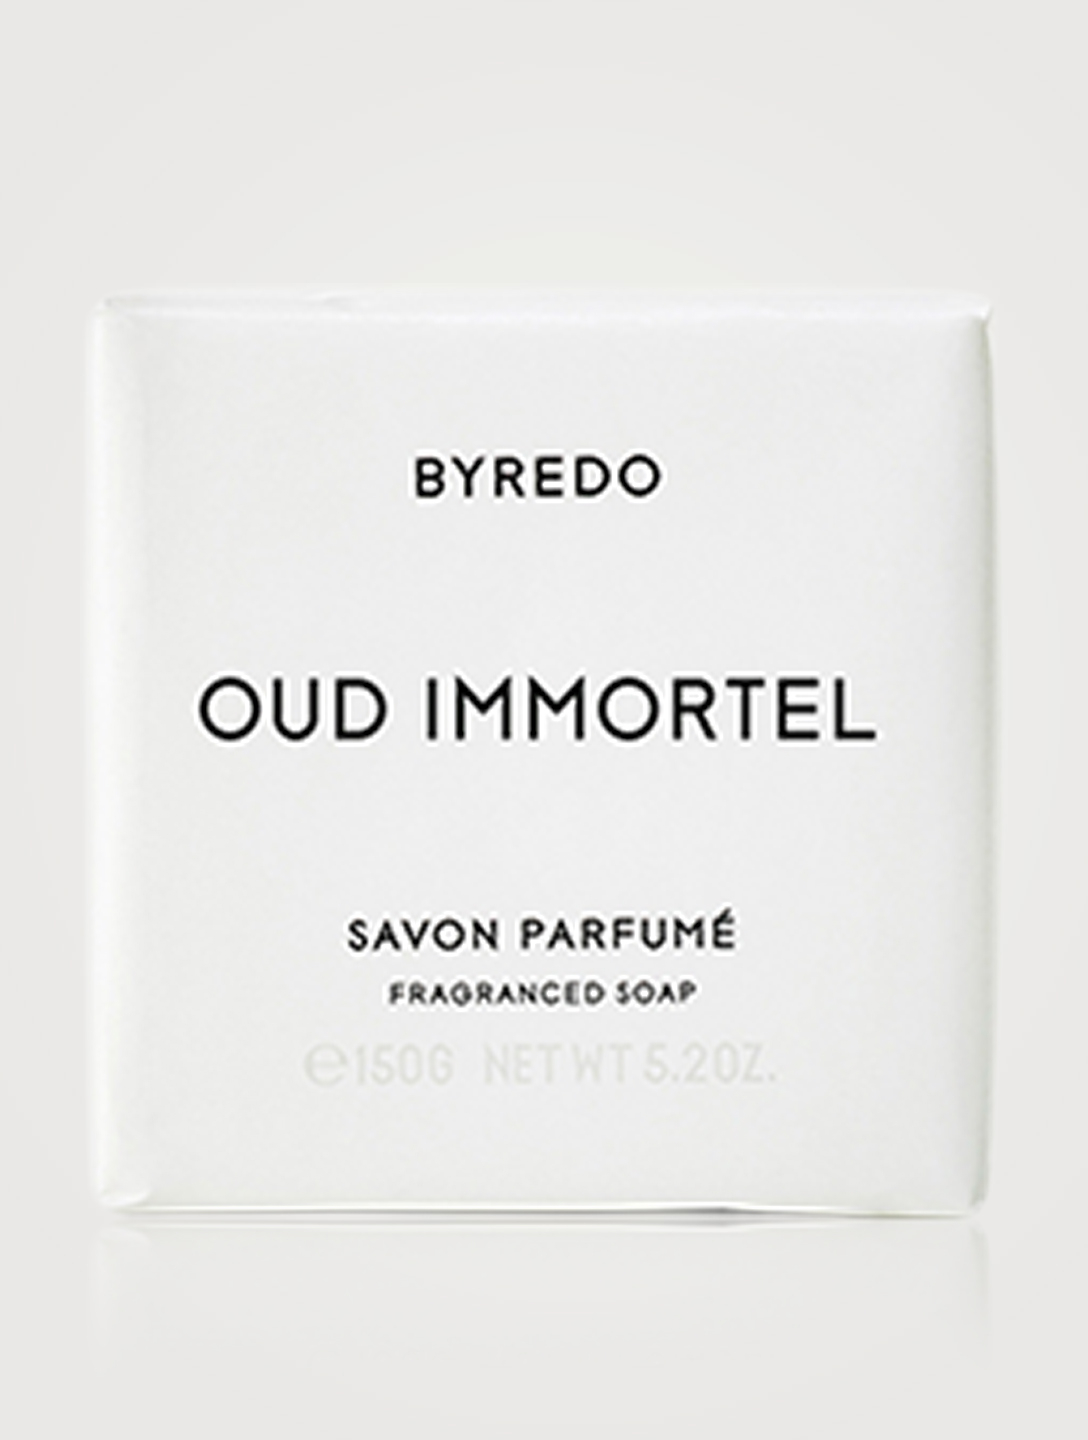 BYREDO Oud Immortel Soap Bar Beauty